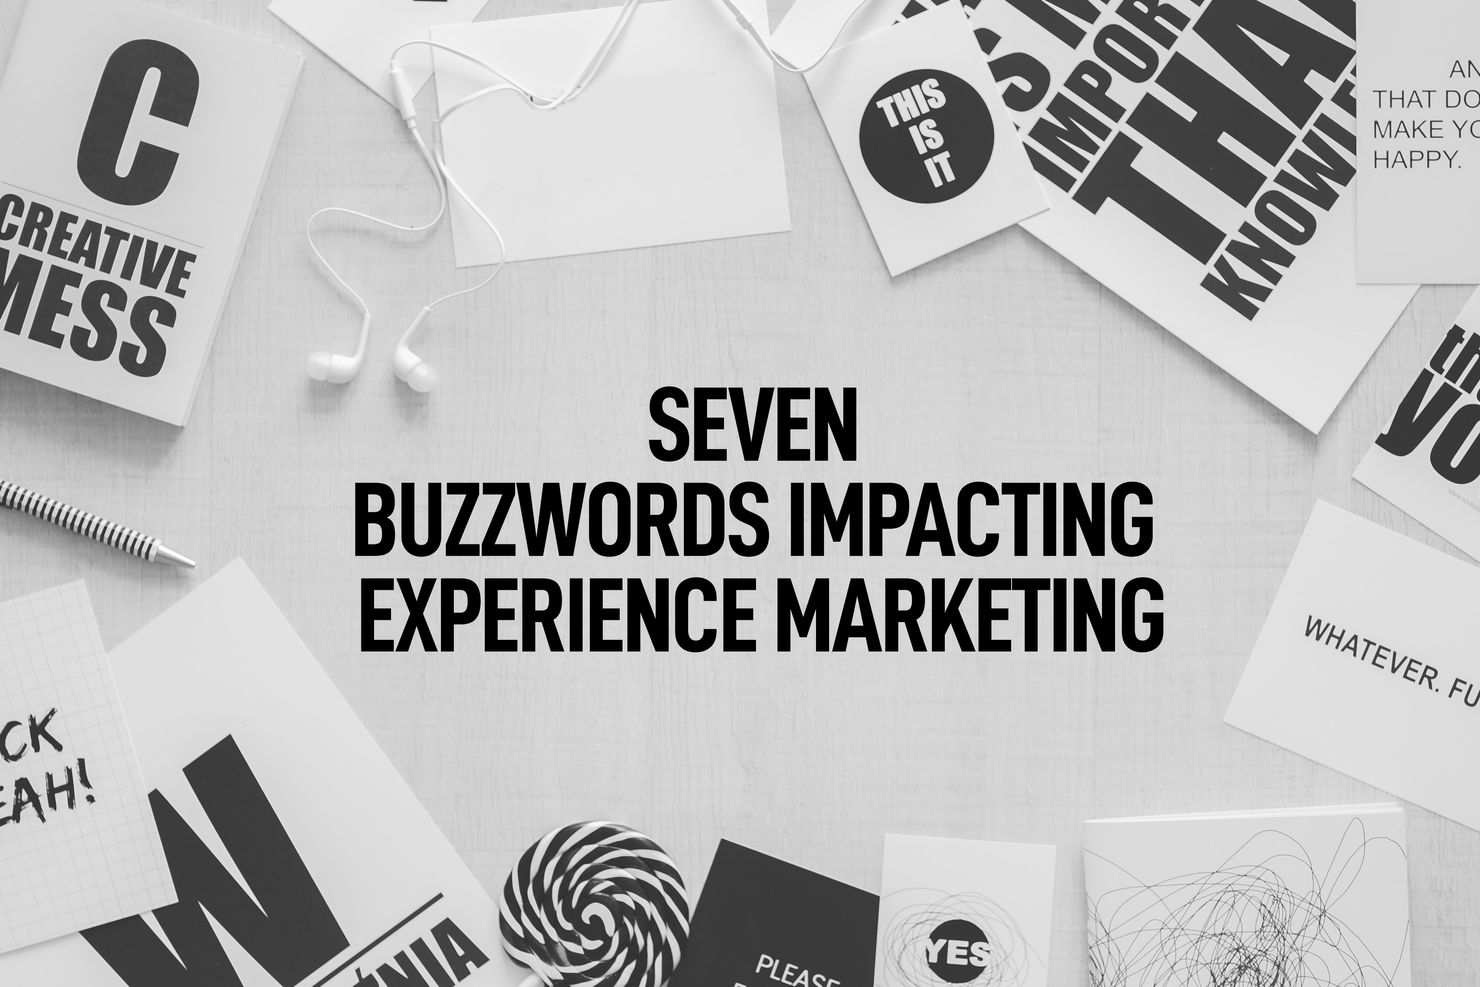 Image 1 for Seven Buzzwords Impacting Experience Marketing